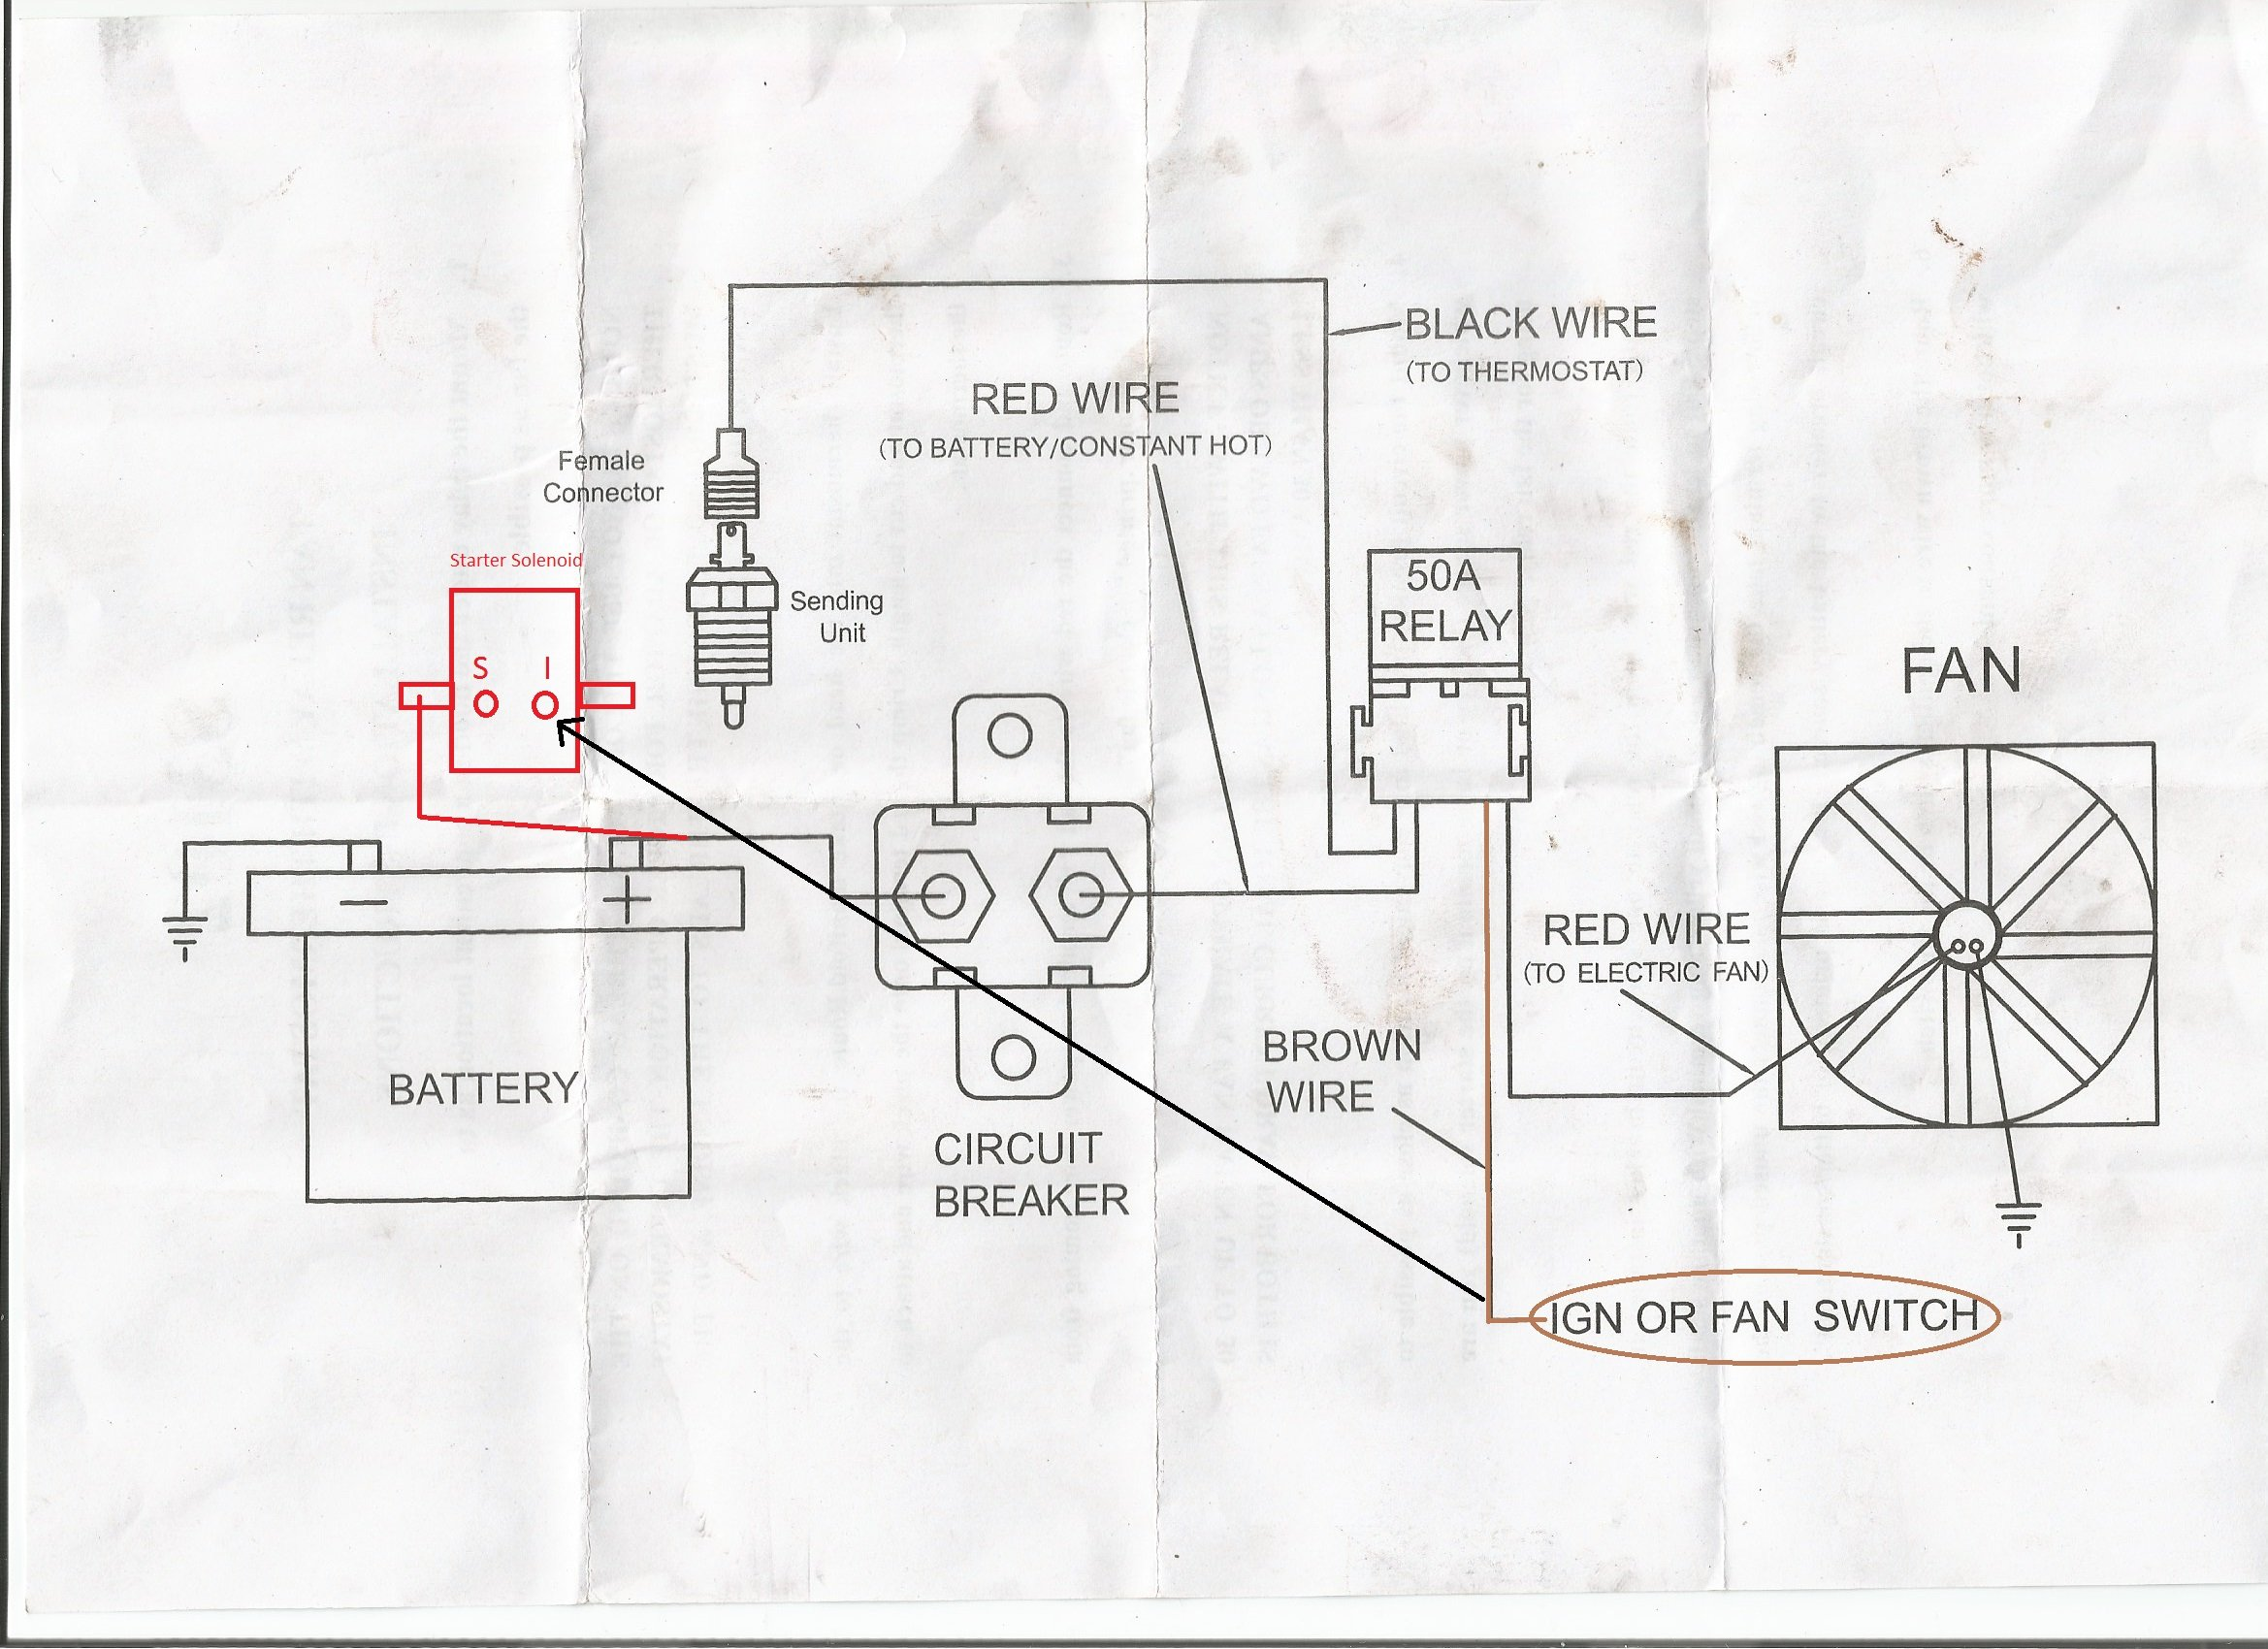 elec fan wiring diagram for 2 way switch electric thermostat 38